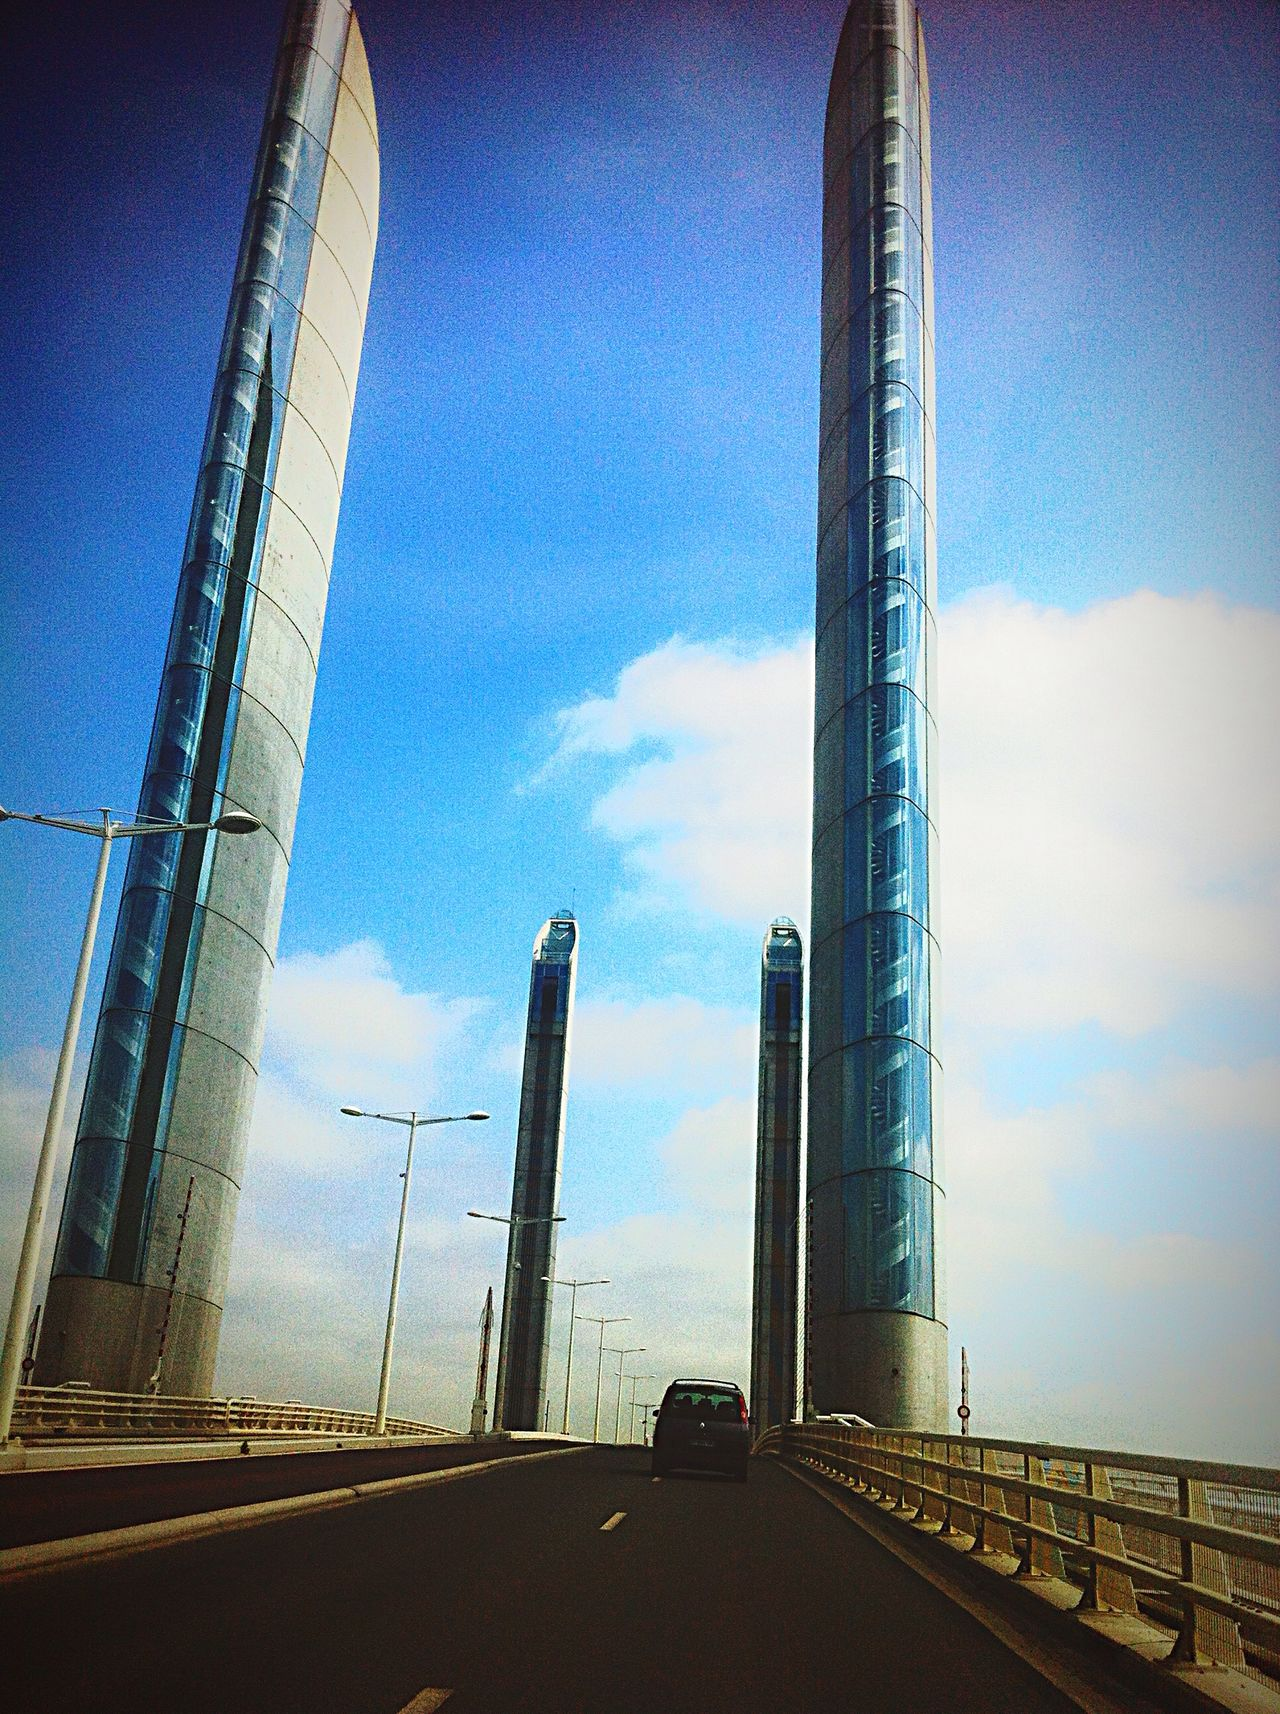 Pont Bridge jacques Chaban Delmas Bordeaux France Francia Frankreich Architecture Atlantic Coast Côte Atlantique Talking Pictures On The Road Travel Photography Taking Photos EyeEm Best Shots From My Point Of View IPhoneography 43 Golden Moments On The Way Urban Photography Streetphotography Drive On The Move Road Route